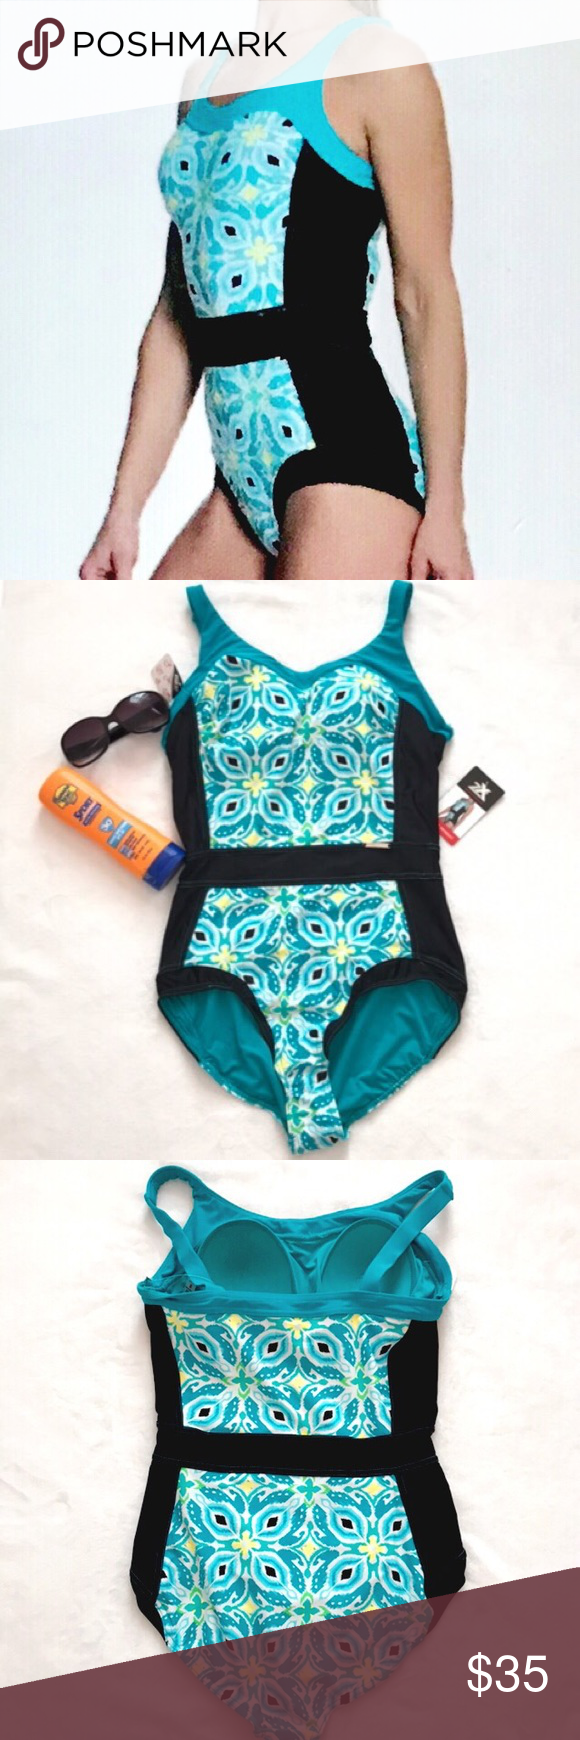 Zeroxposur One Piece Floral Swimming Suit Nwt One Piece